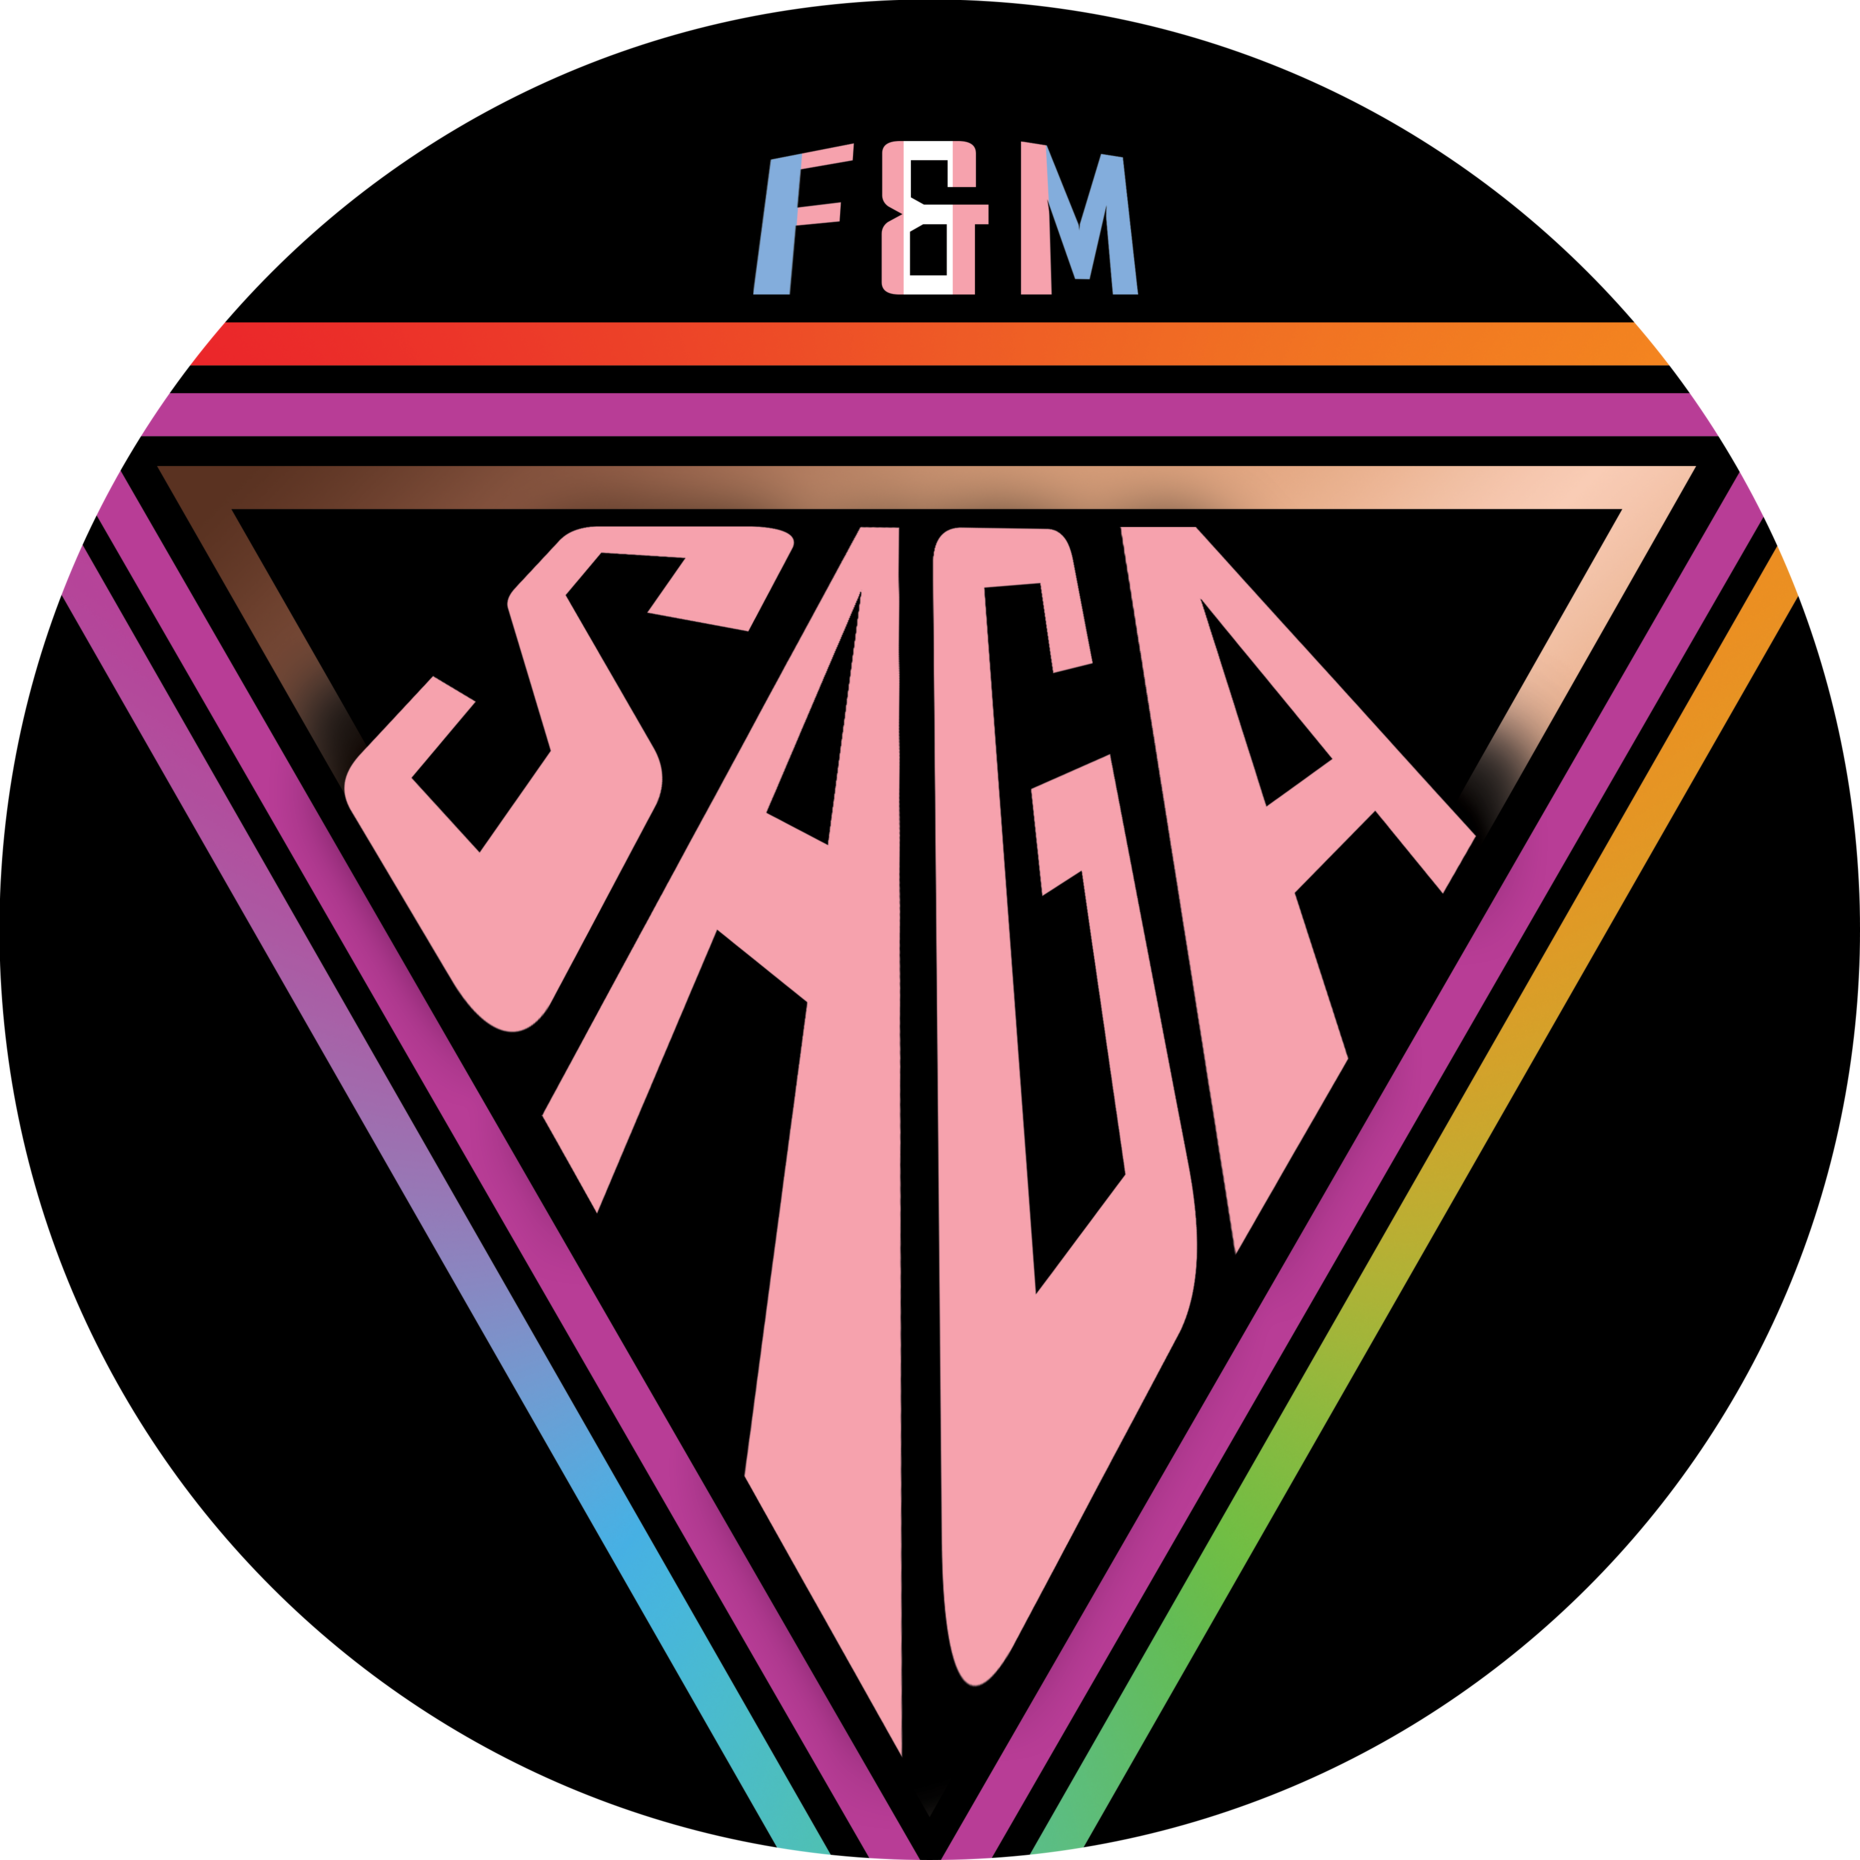 SAGA in pink fitted inside an upside down rainbow triangle, with the letters F&M resting atop with the trans pride flag colors